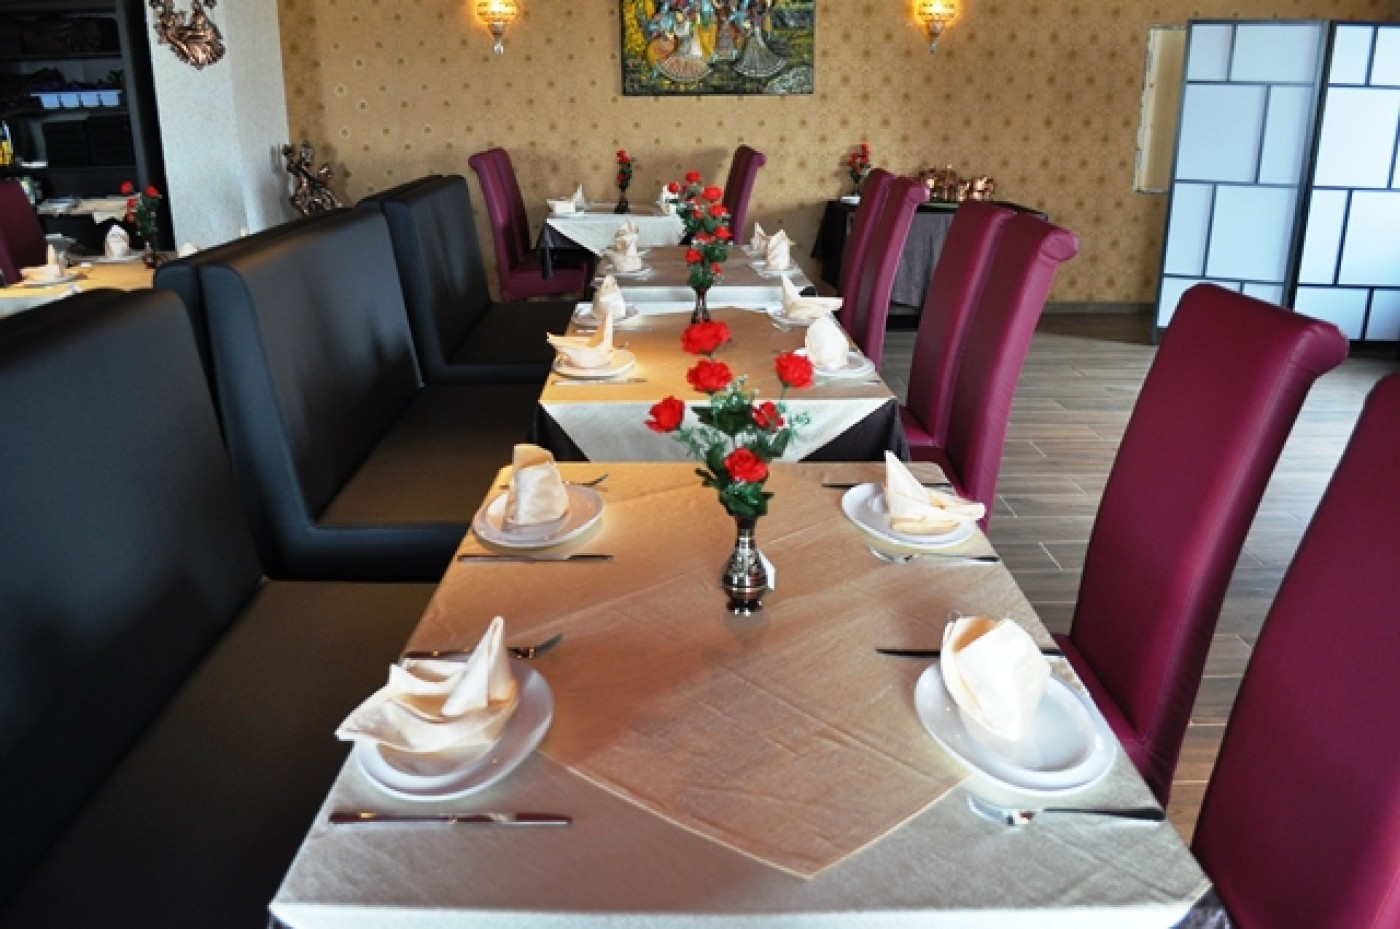 Murcia today spice villa indian restaurant camposol for 4 spice indian cuisine